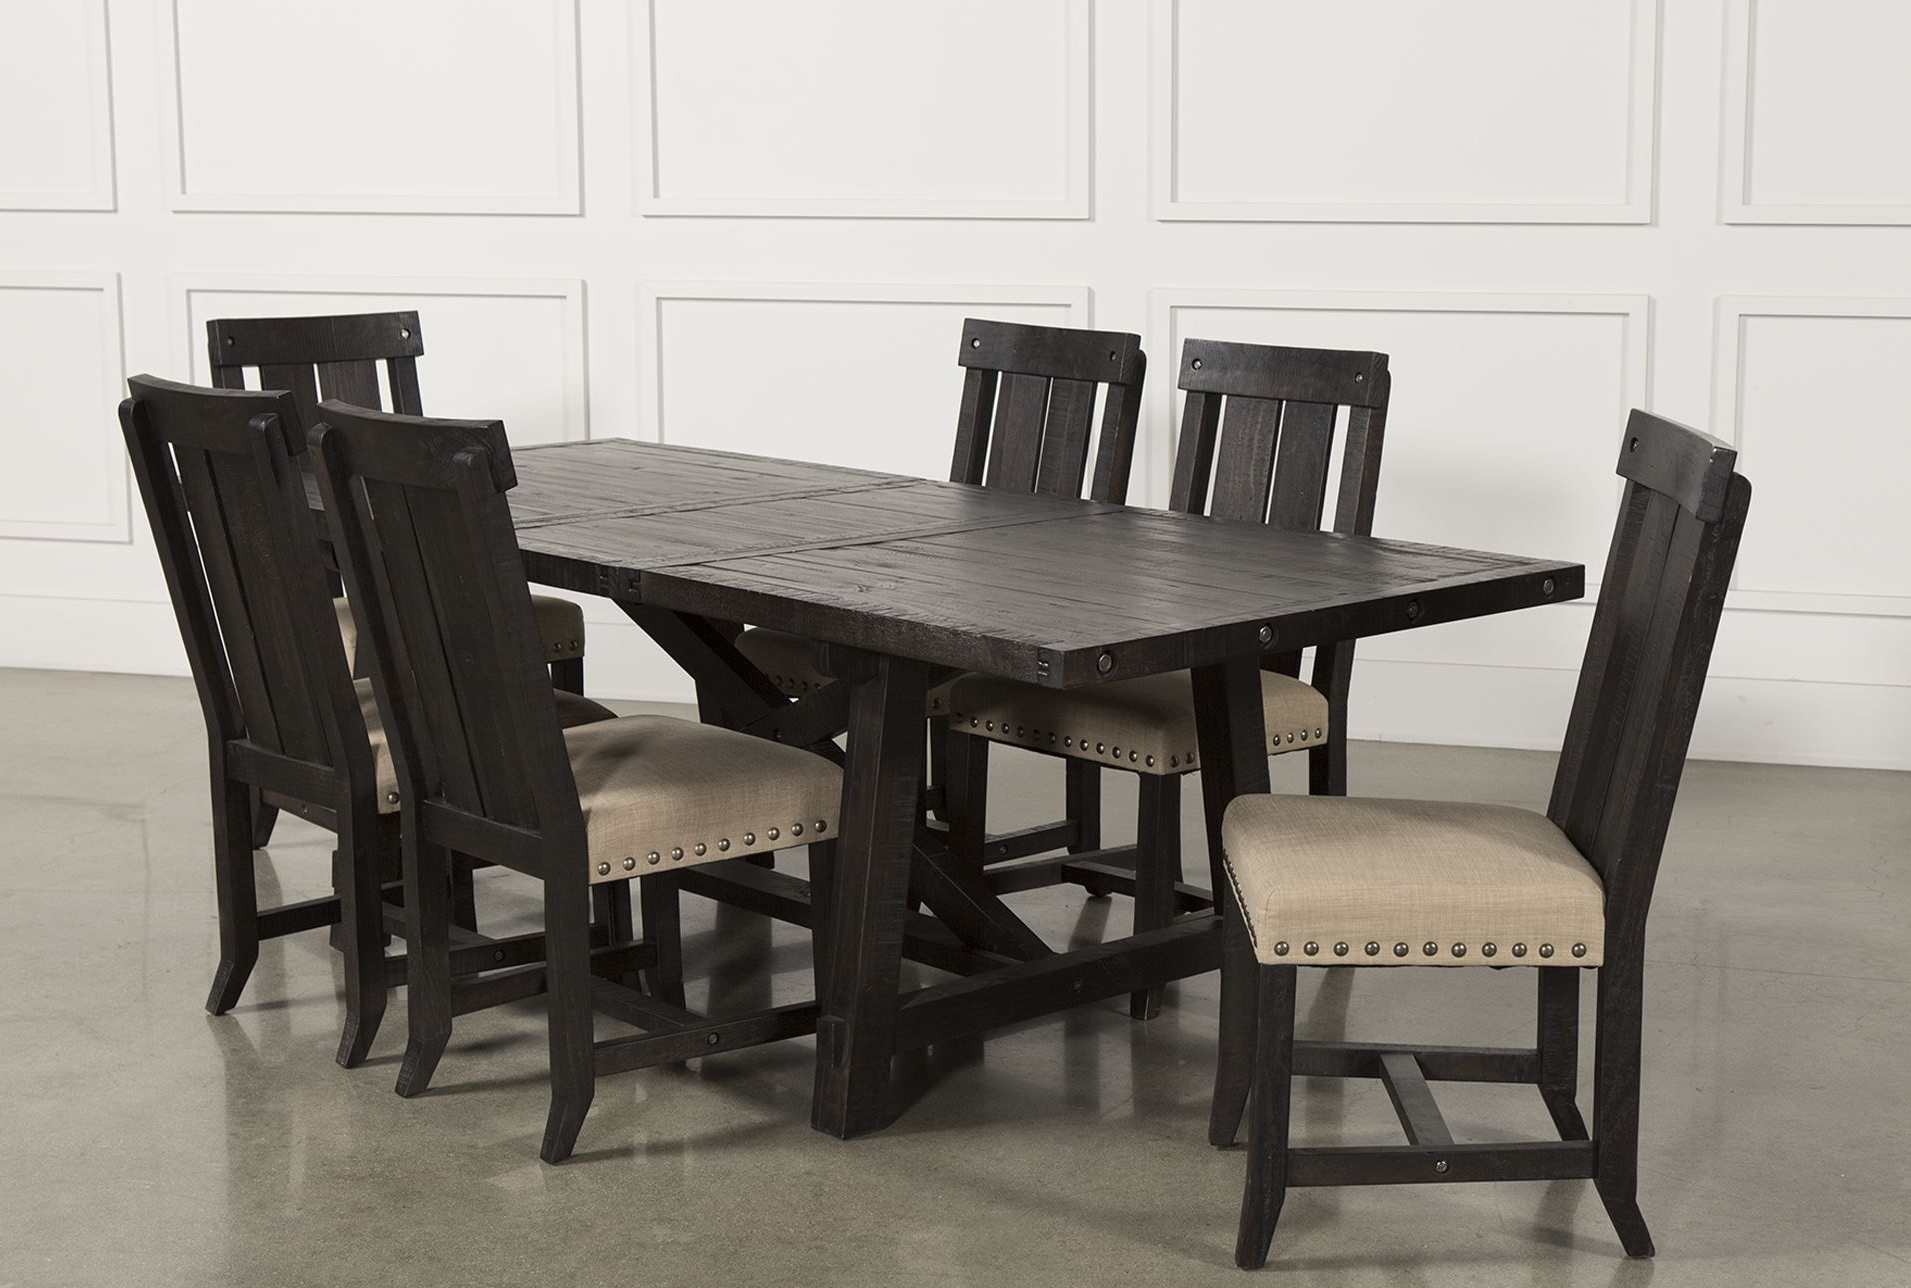 Home, Future Home Regarding Jaxon Grey 5 Piece Round Extension Dining Sets With Wood Chairs (View 10 of 25)